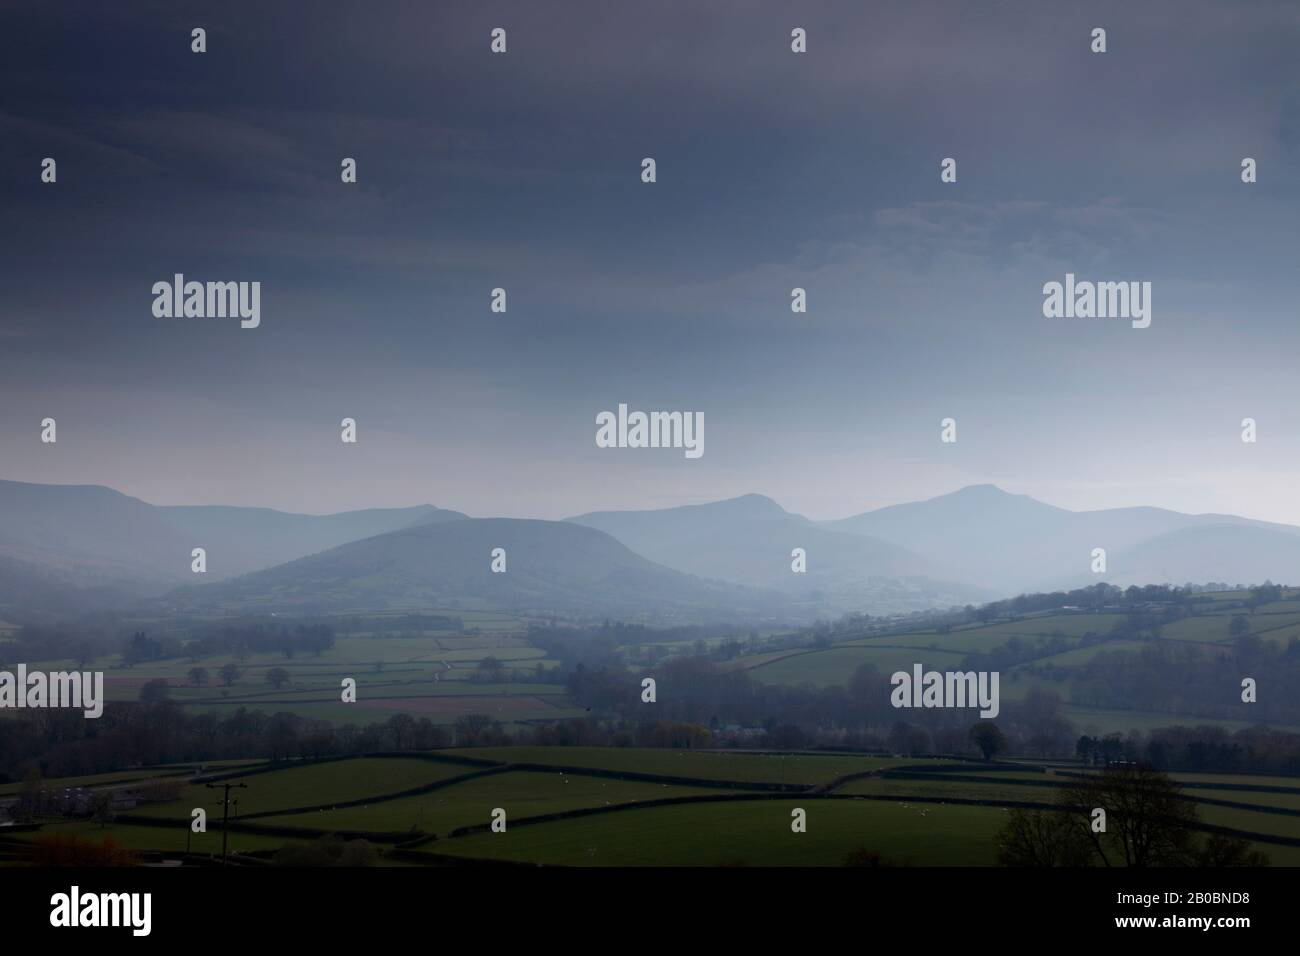 Hazy view across the Usk Valley to the peaks of Fan y Big, Cribyn and Pen y Fan in the Brecon Beacons, Wales, UK Stock Photo